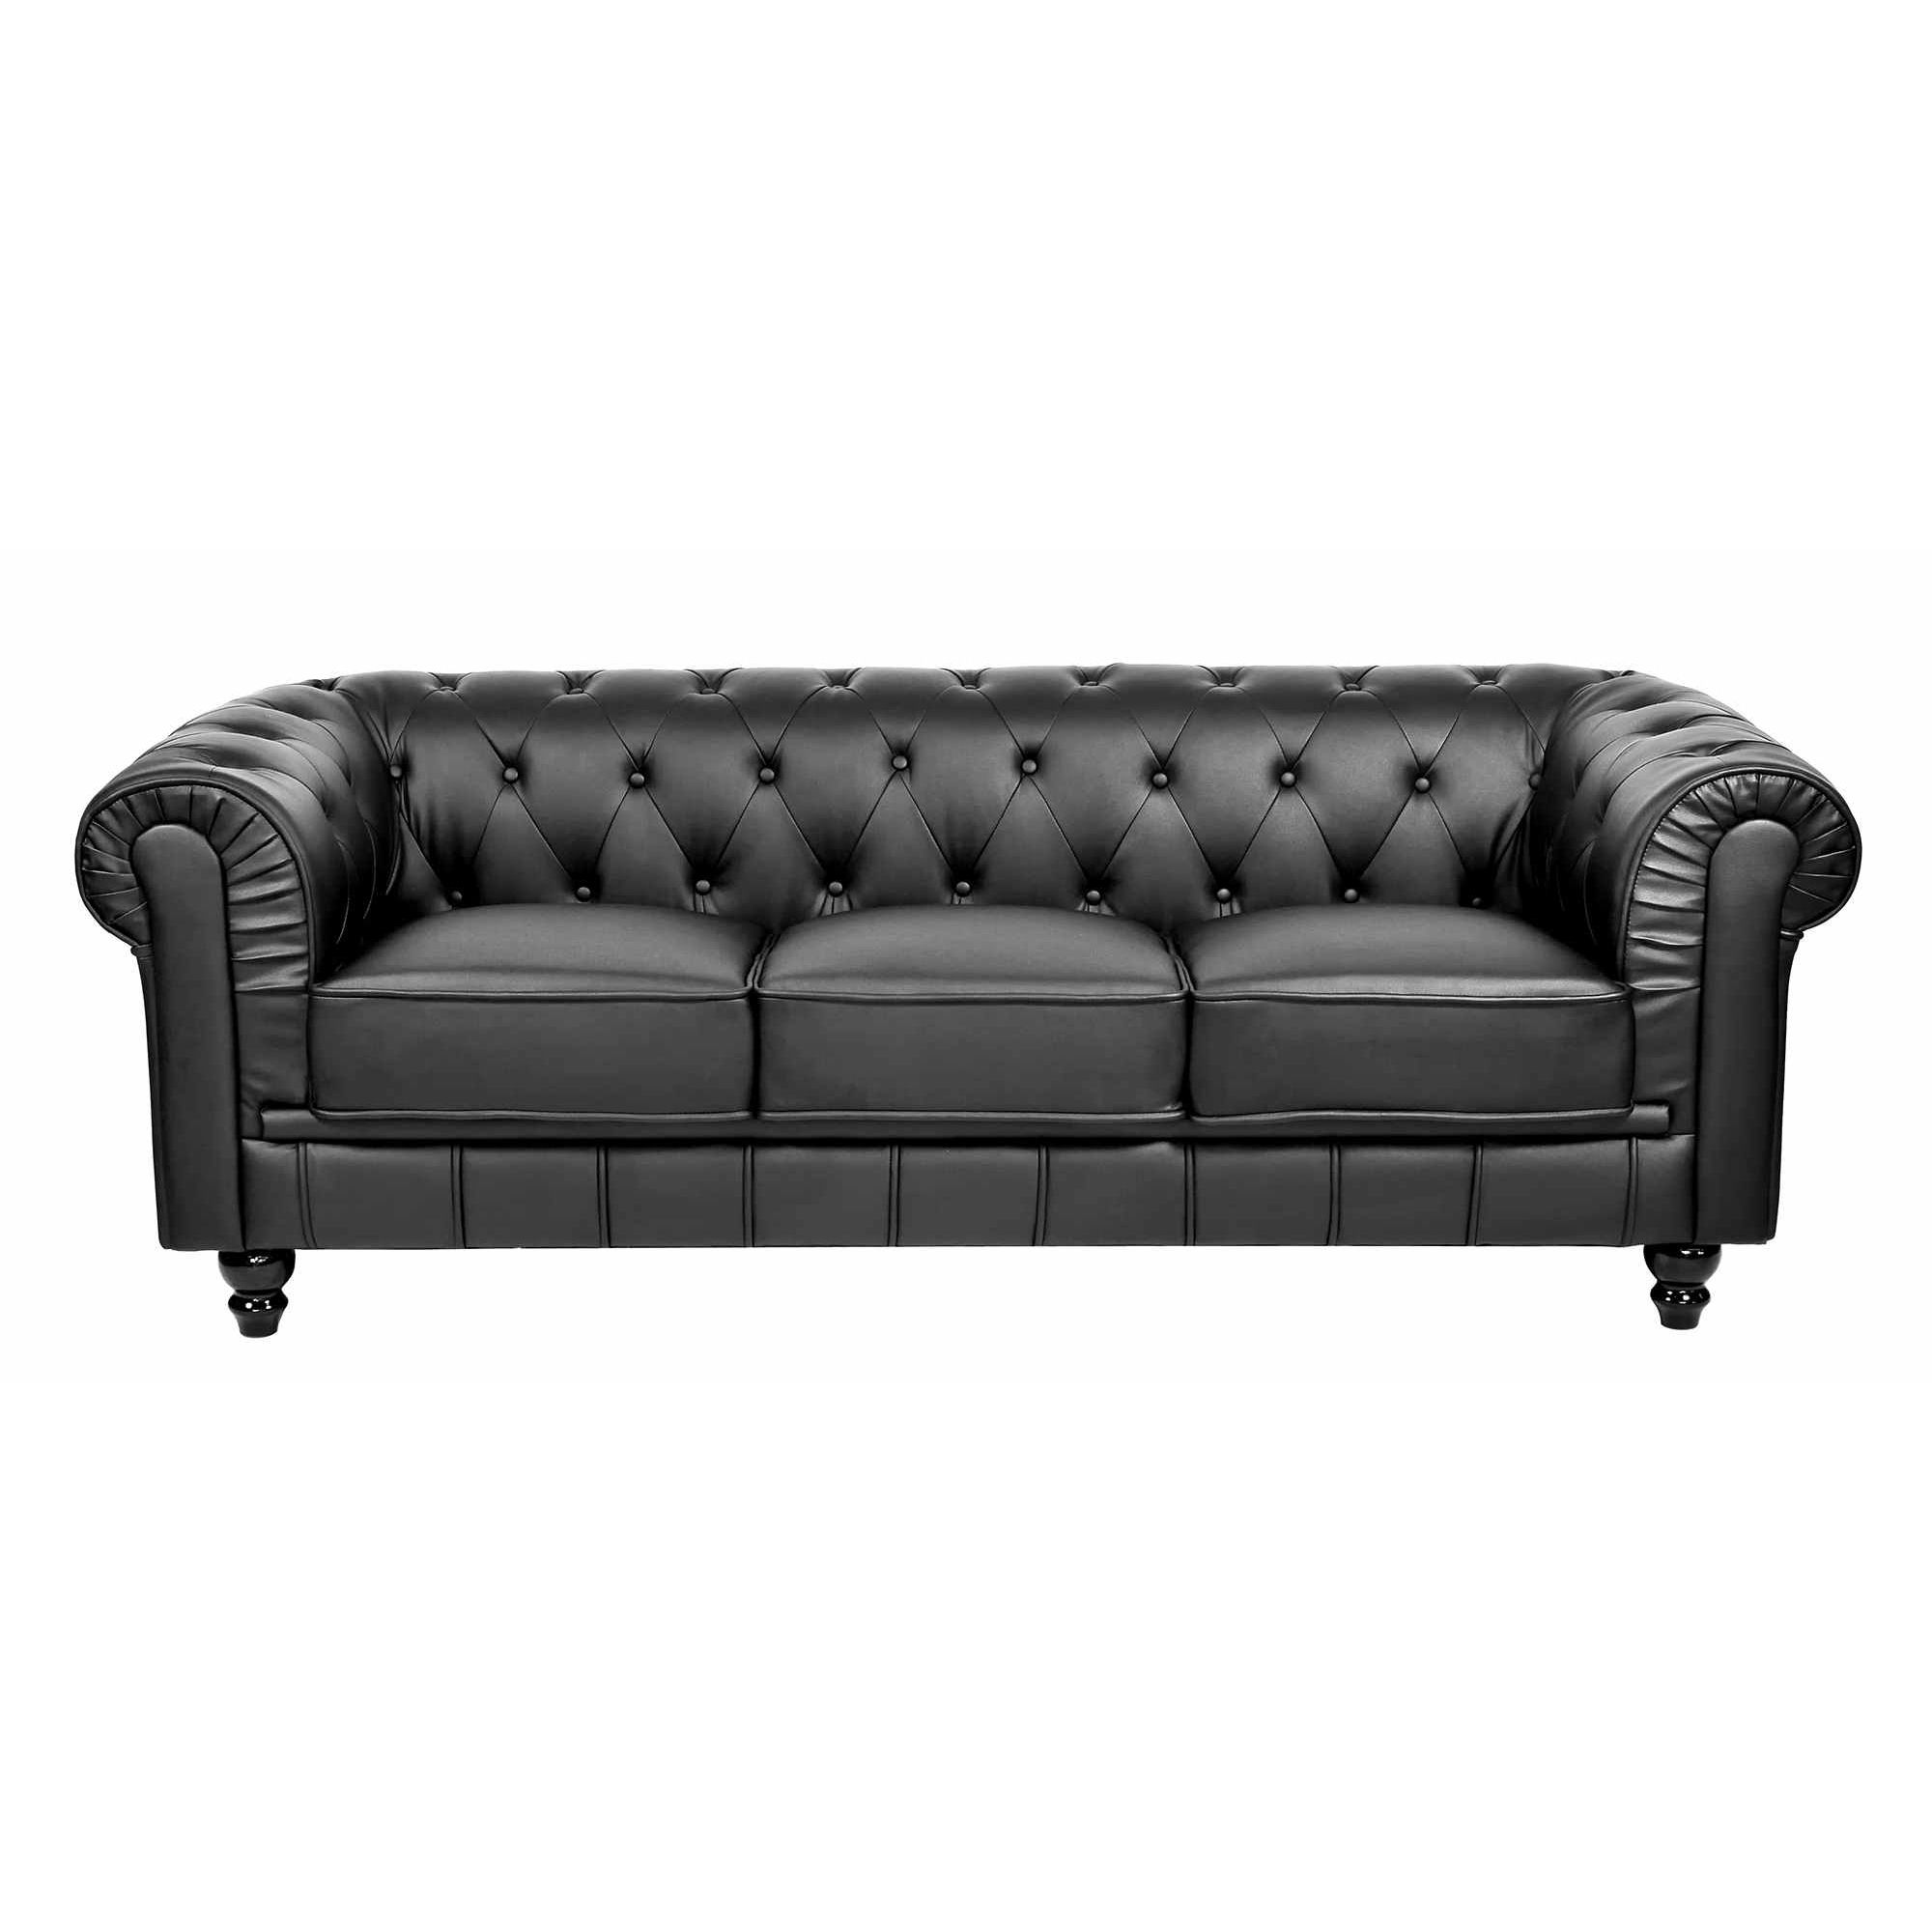 Deco in paris ensemble canape 3 2 1 places noir chesterfield ens321 noi chest - Canape chesterfield noir ...